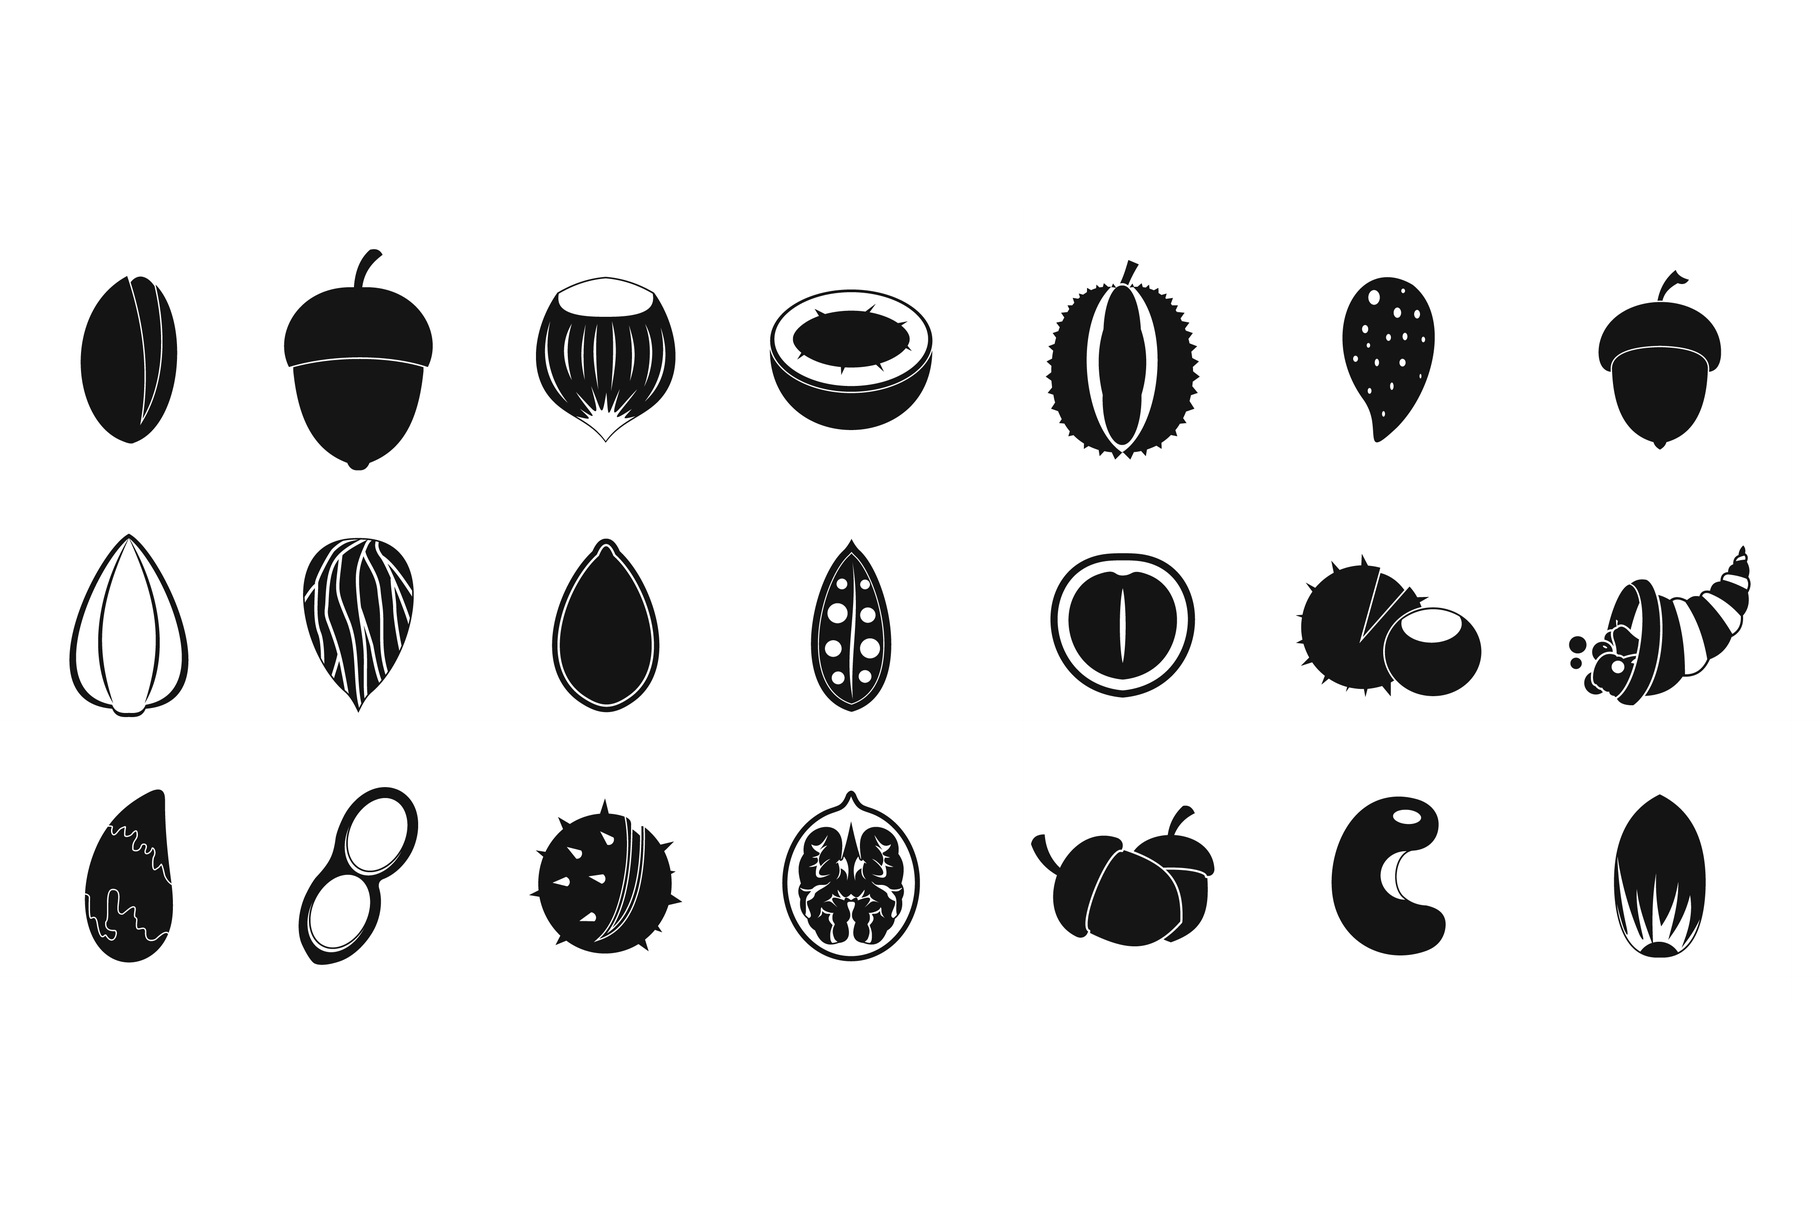 Nuts icon set, simple style example image 1